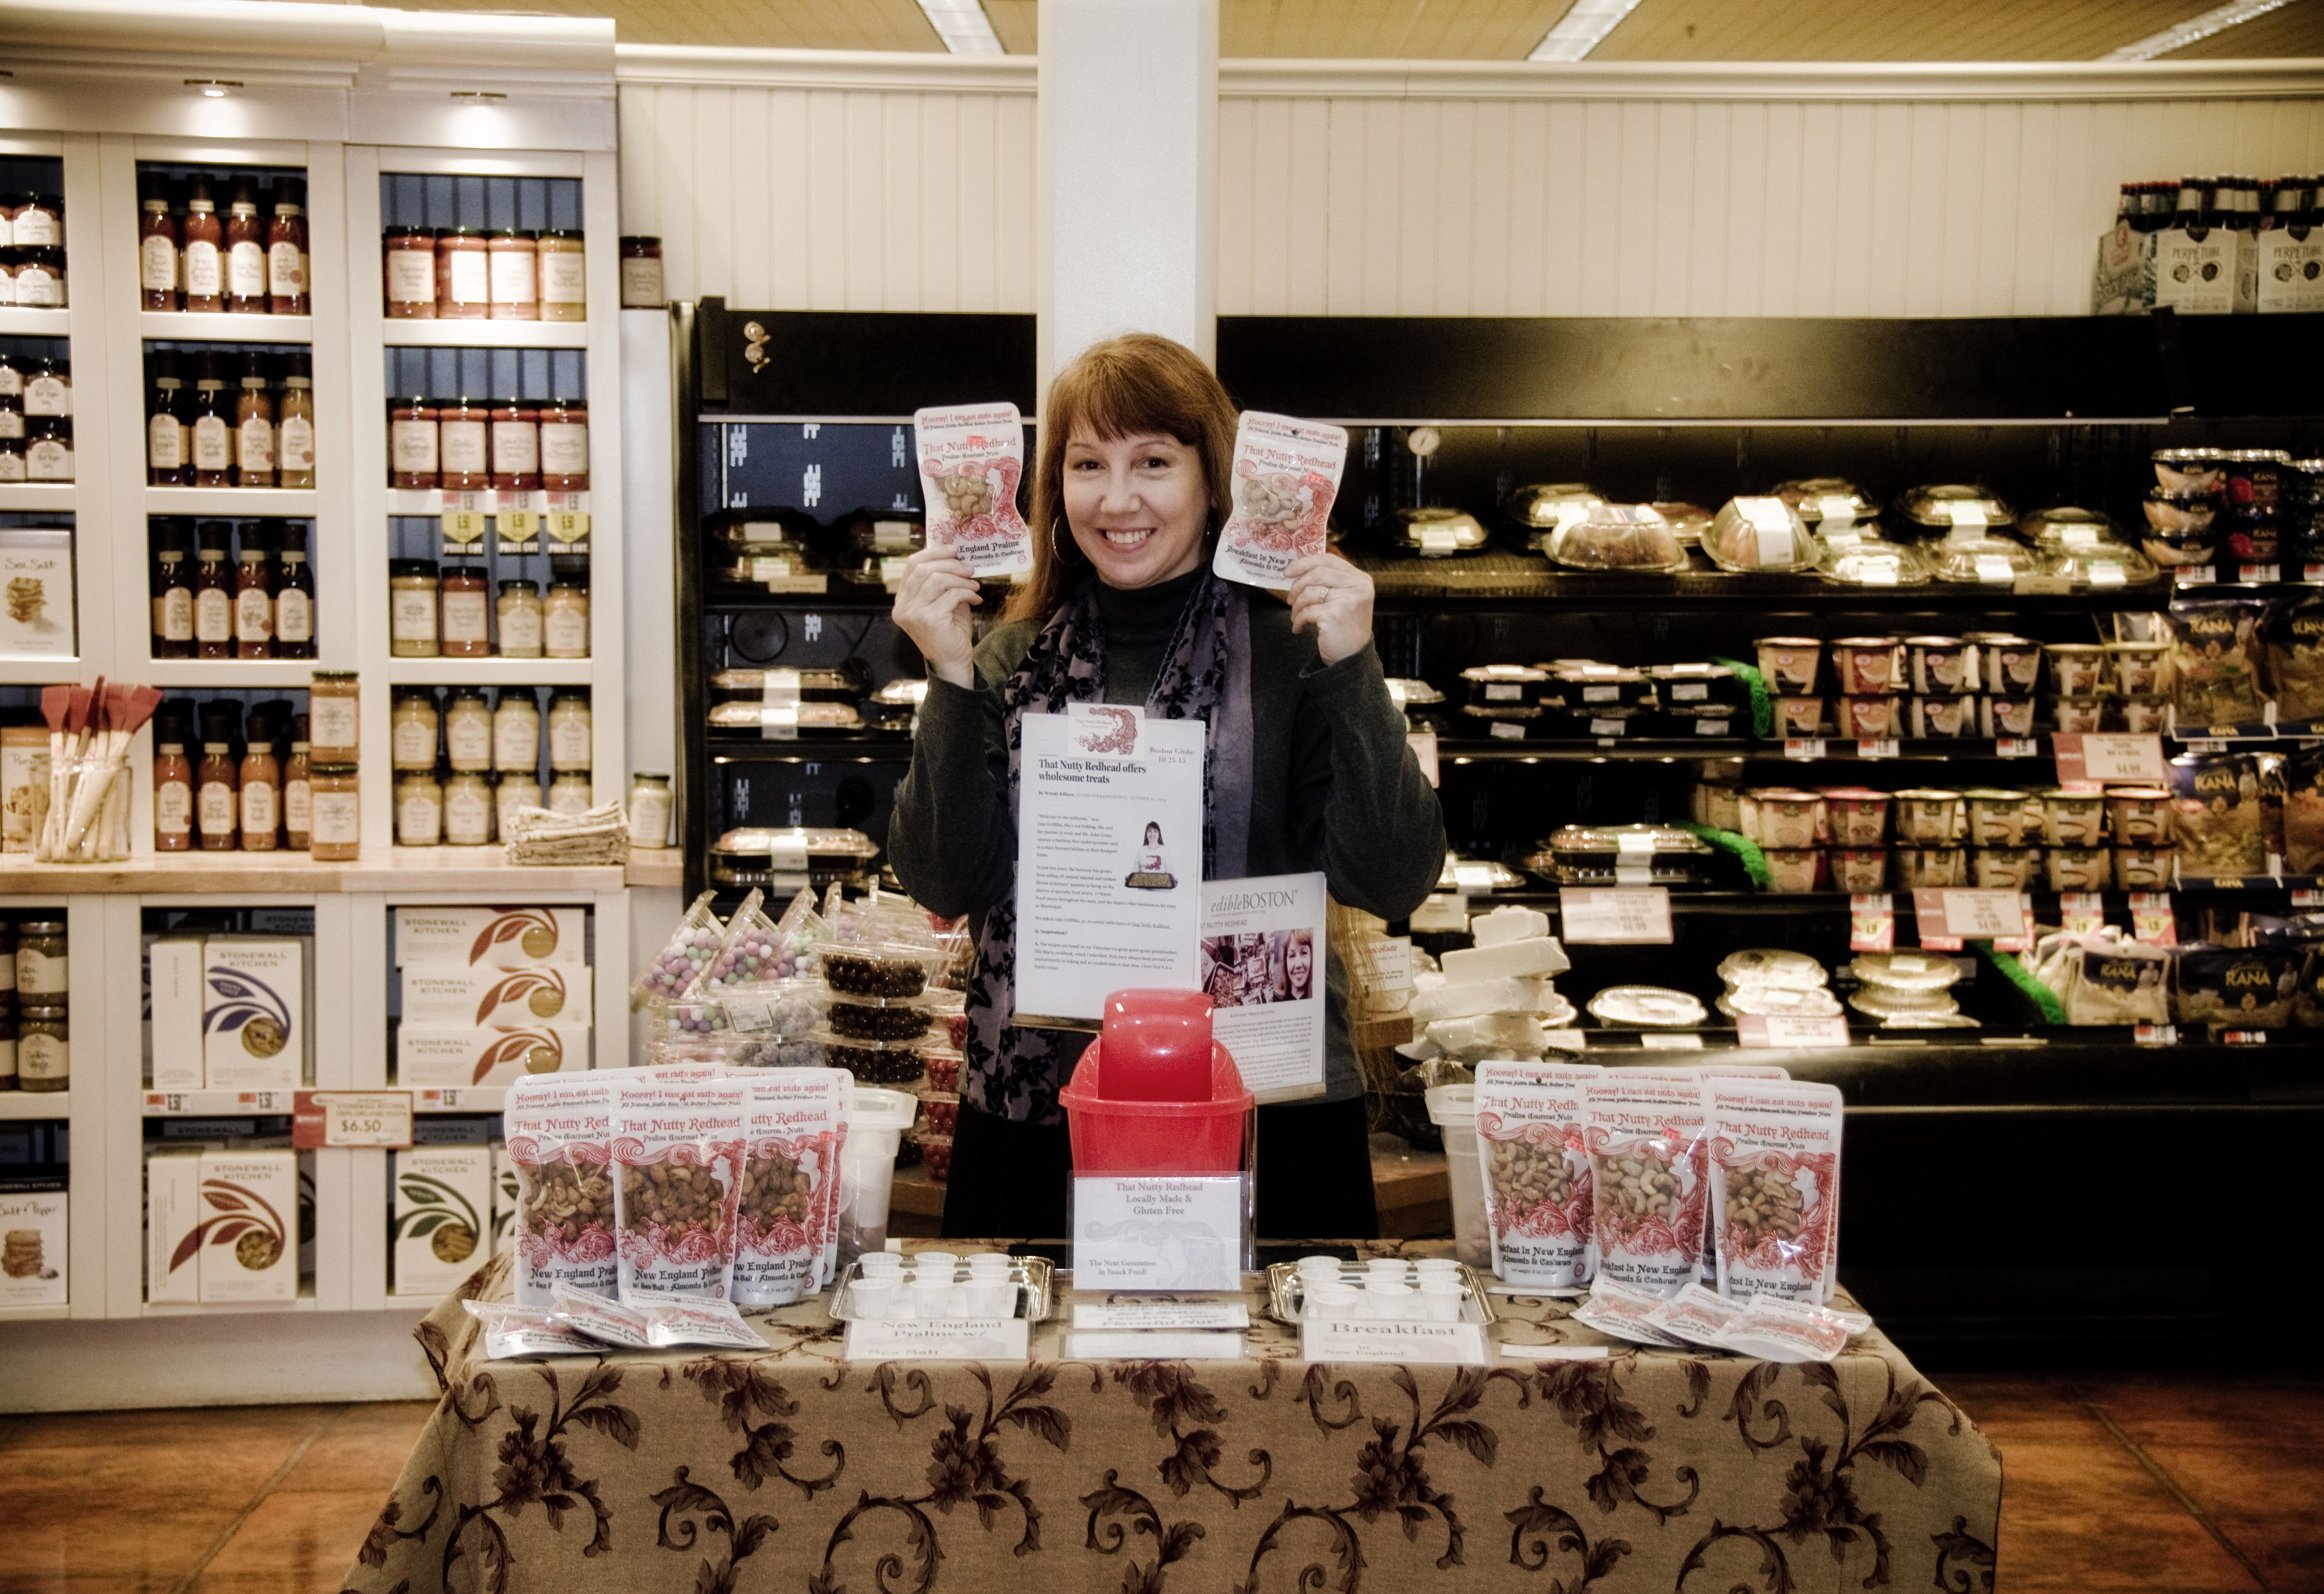 Lisa, aka That Nutty Redhead, spreading the Praline nut love at a store demo tasting in MA.